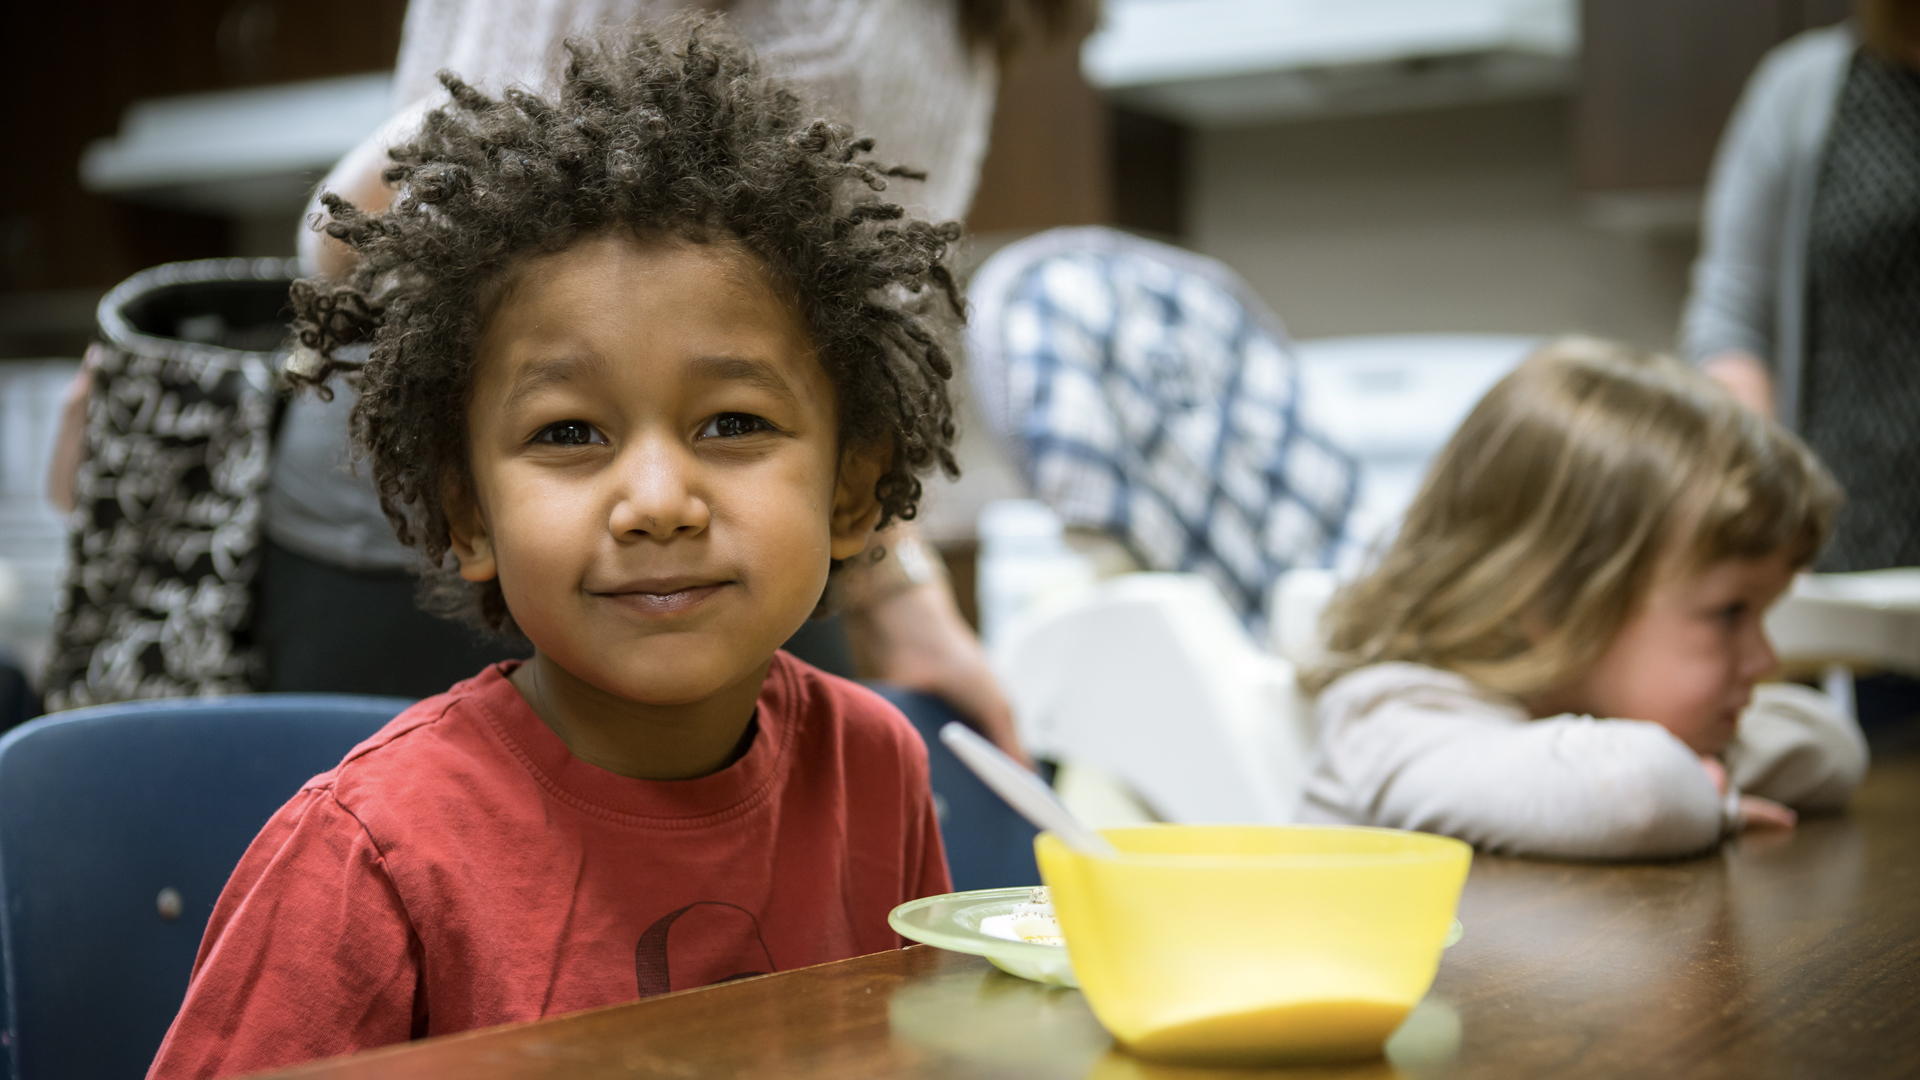 Addressing food insecurity in Winnipeg.